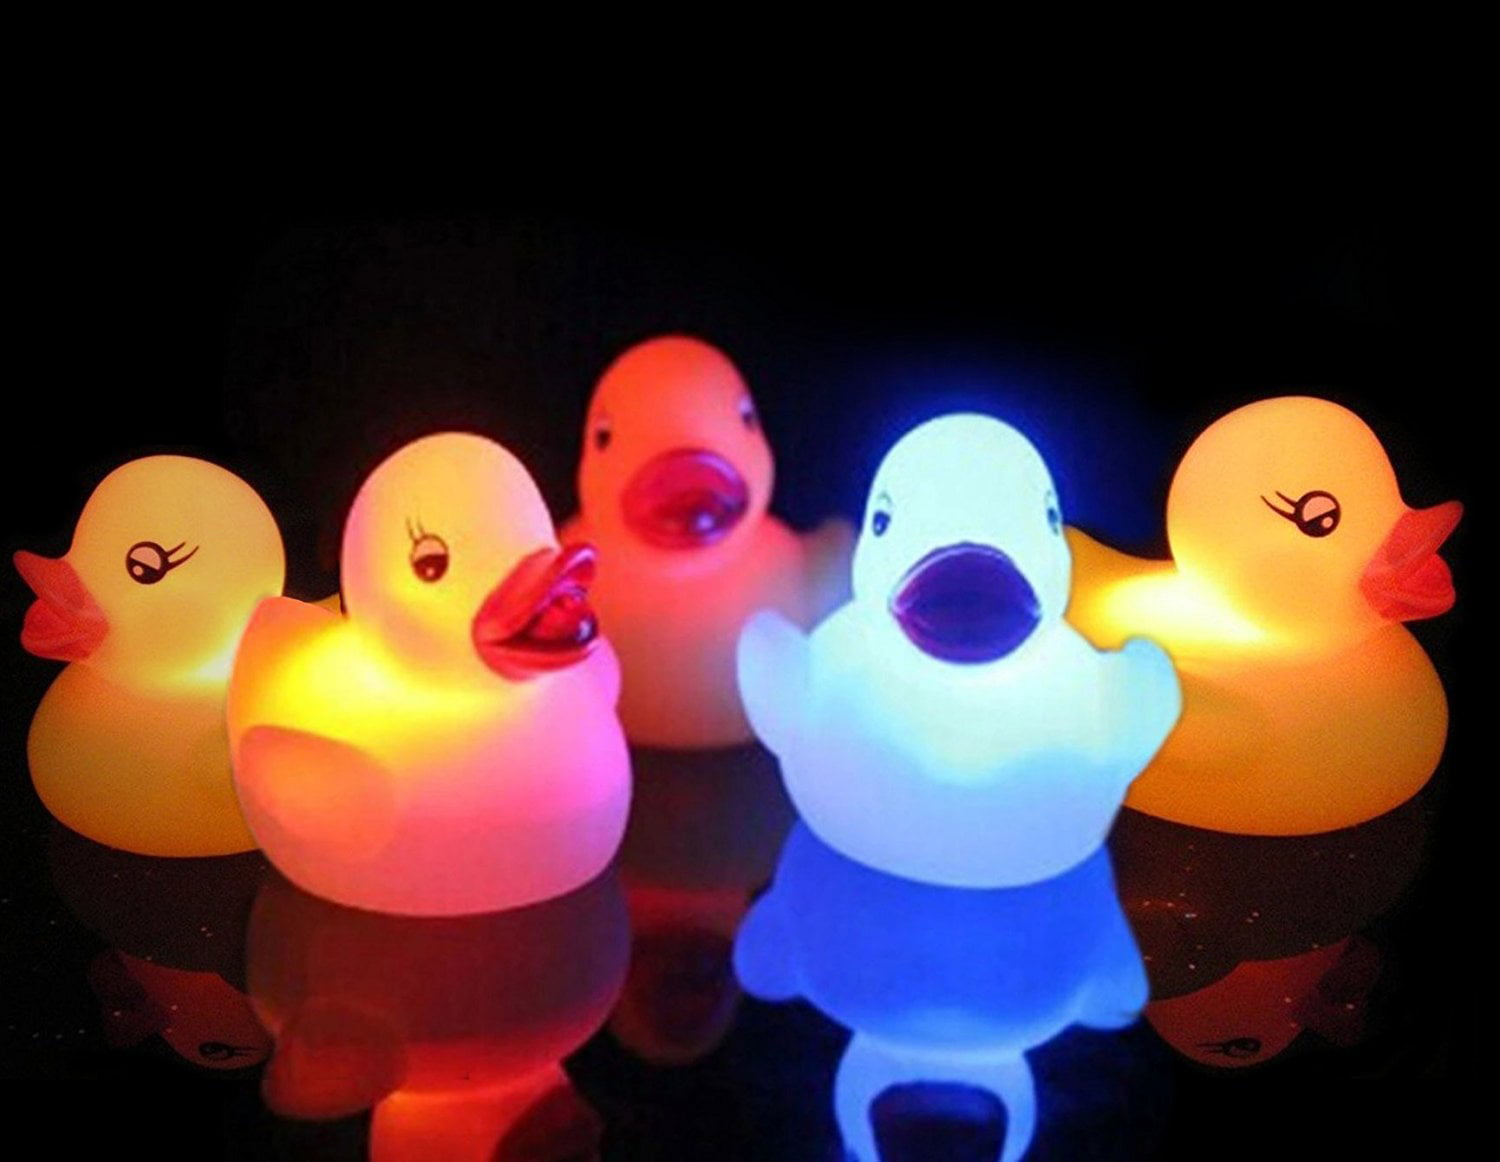 Pack of 5 Light-Up Rubber Duckies - Illuminating Color ...